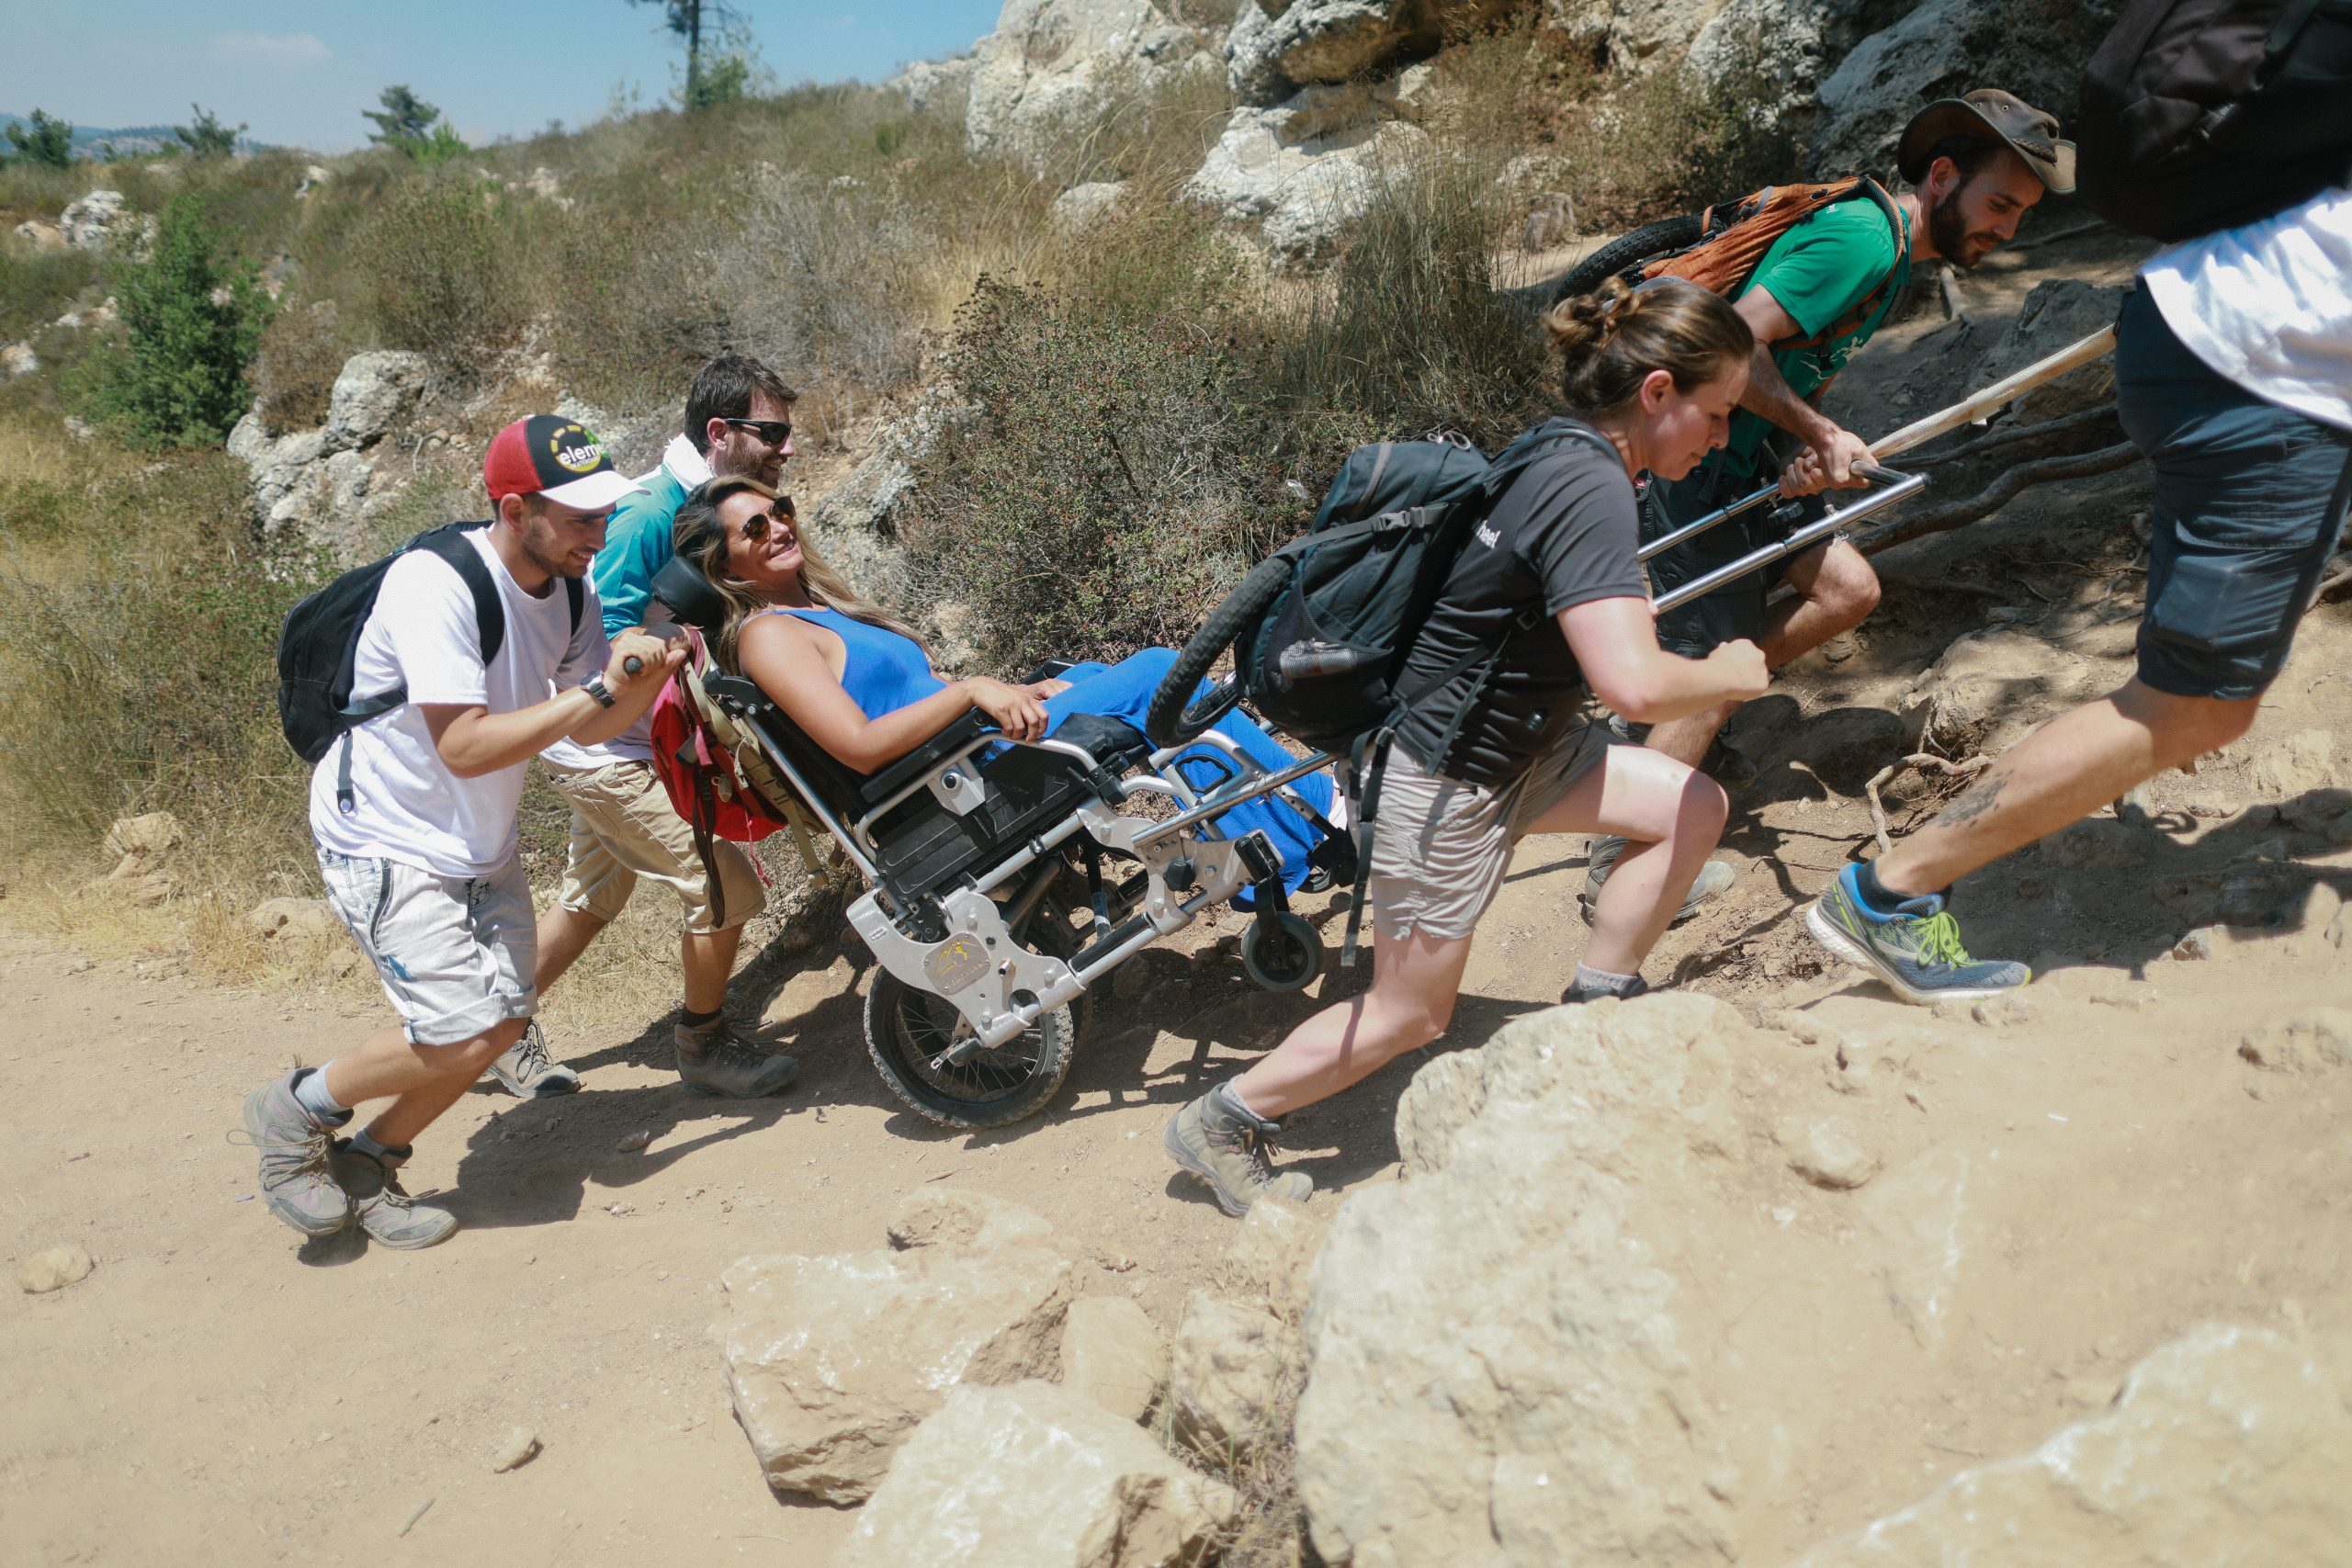 "<img src=""Hikers assisting someone in a Trekker.jpg"" alt=""Group of hikers helping to get someone in a Trekker up a slope"">"